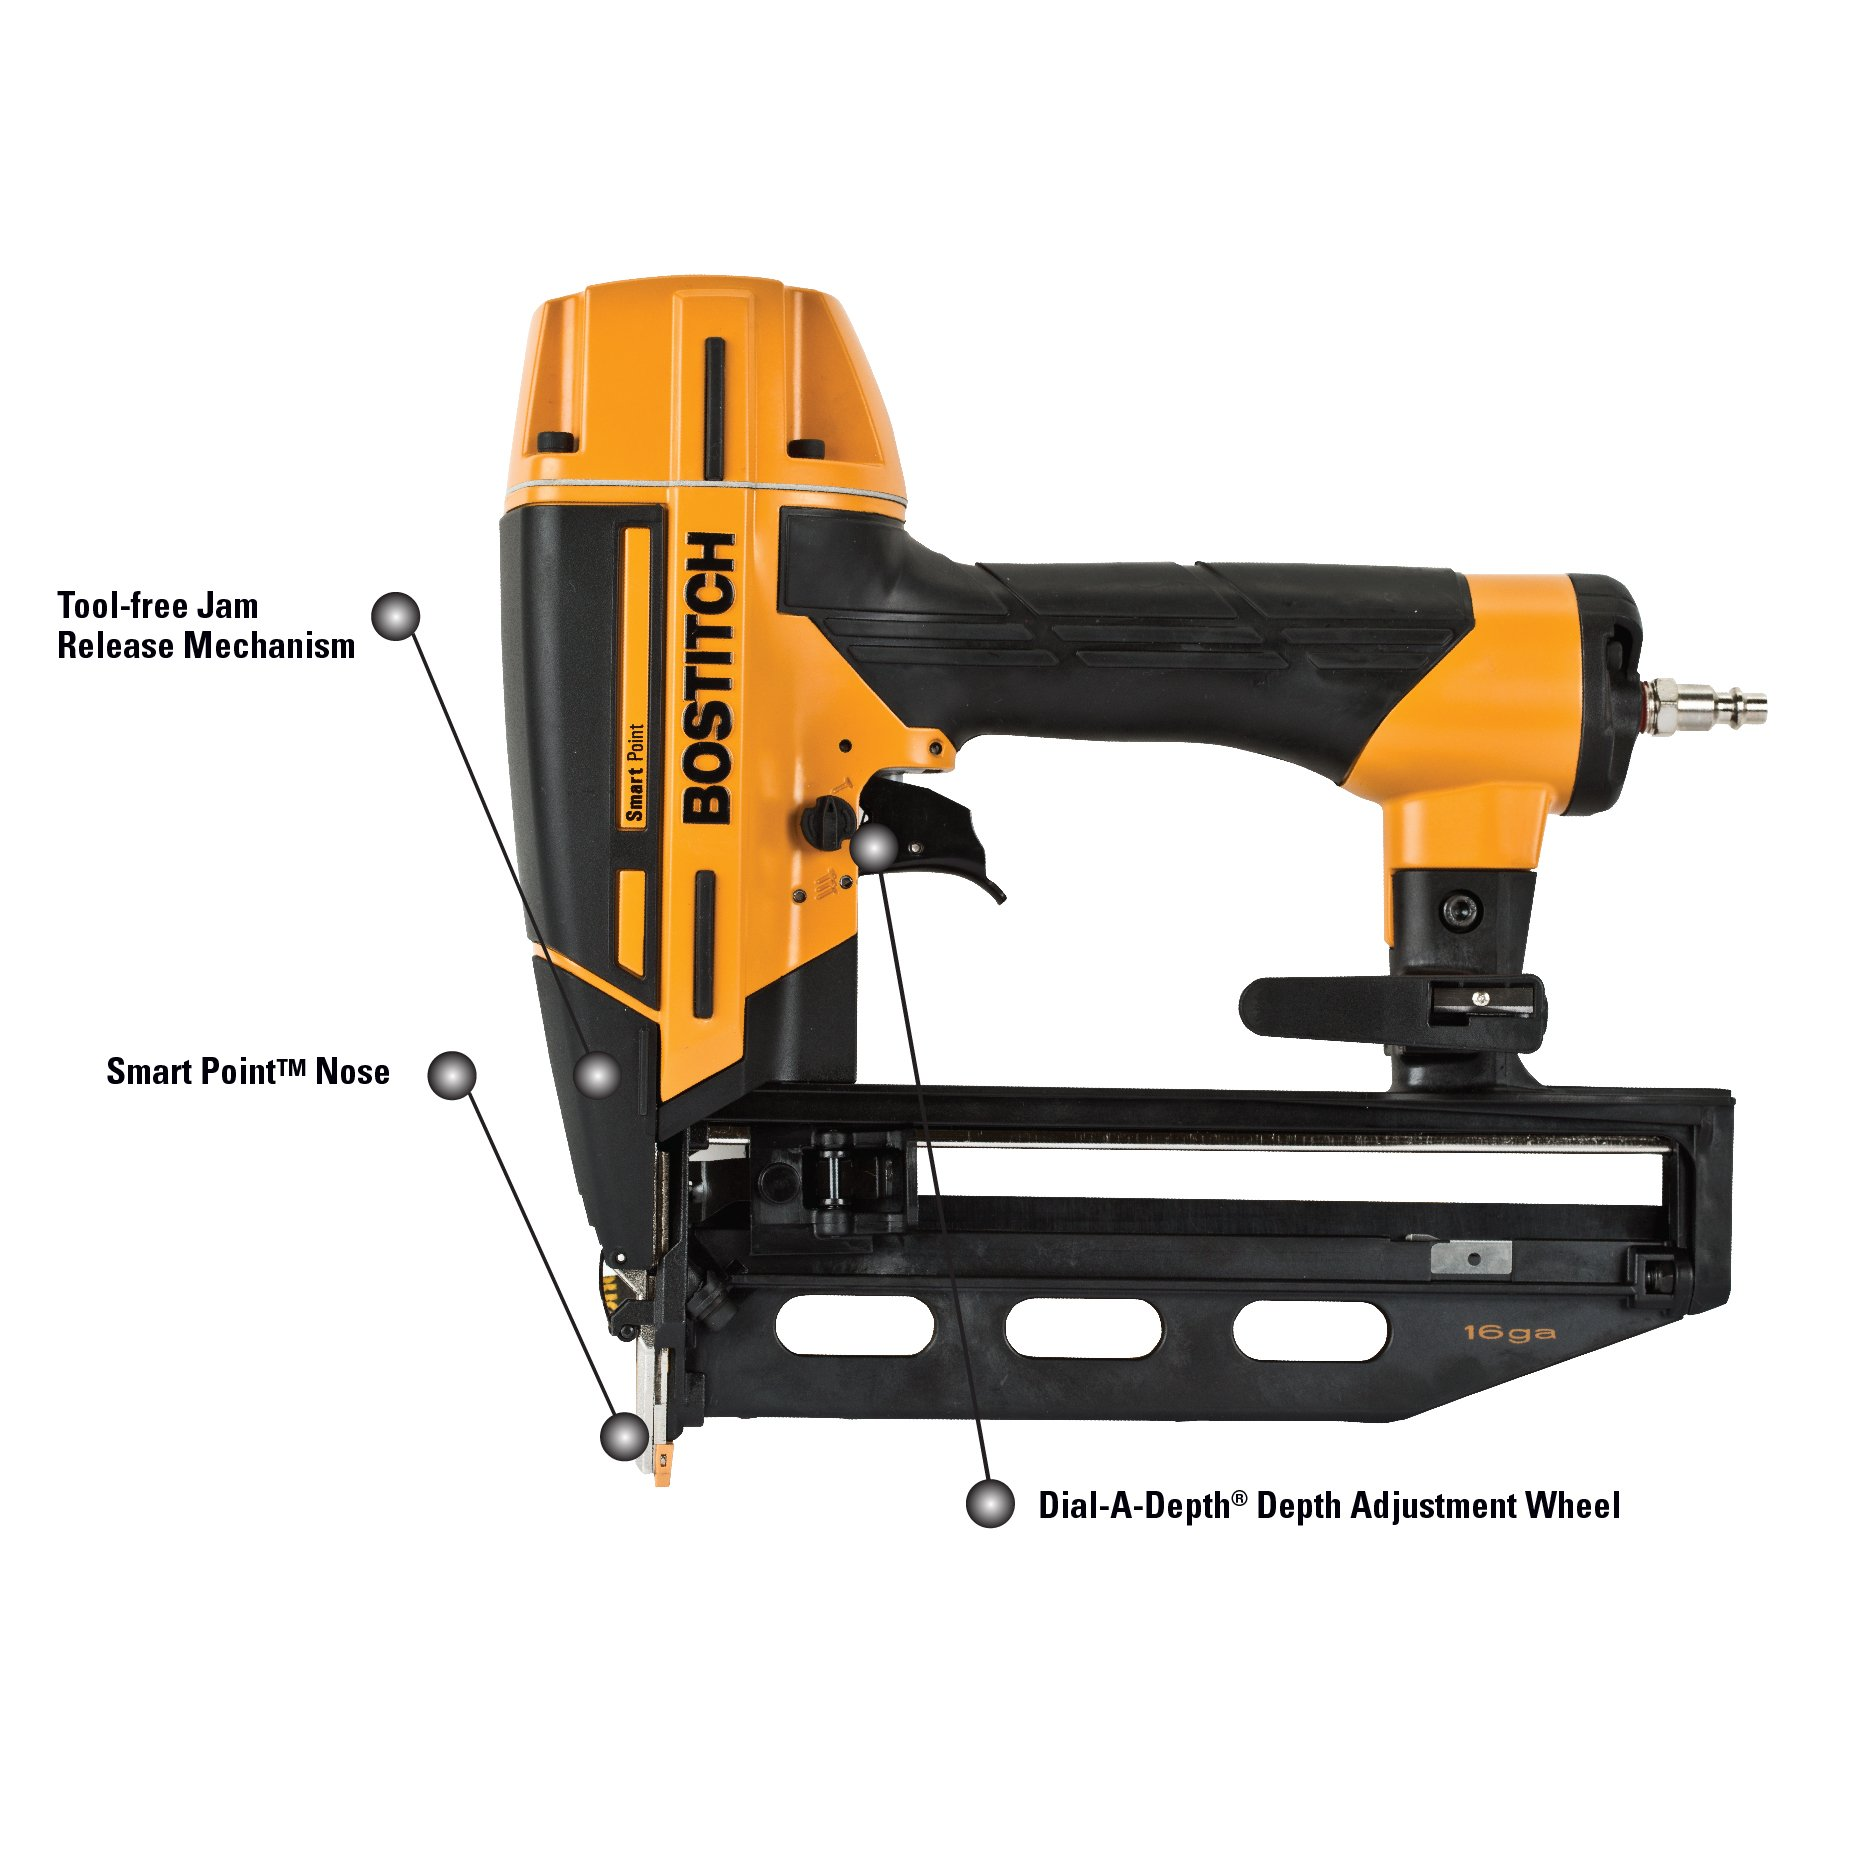 BOSTITCH BTFP71917 Smart Point 16GA Finish Nailer Kit